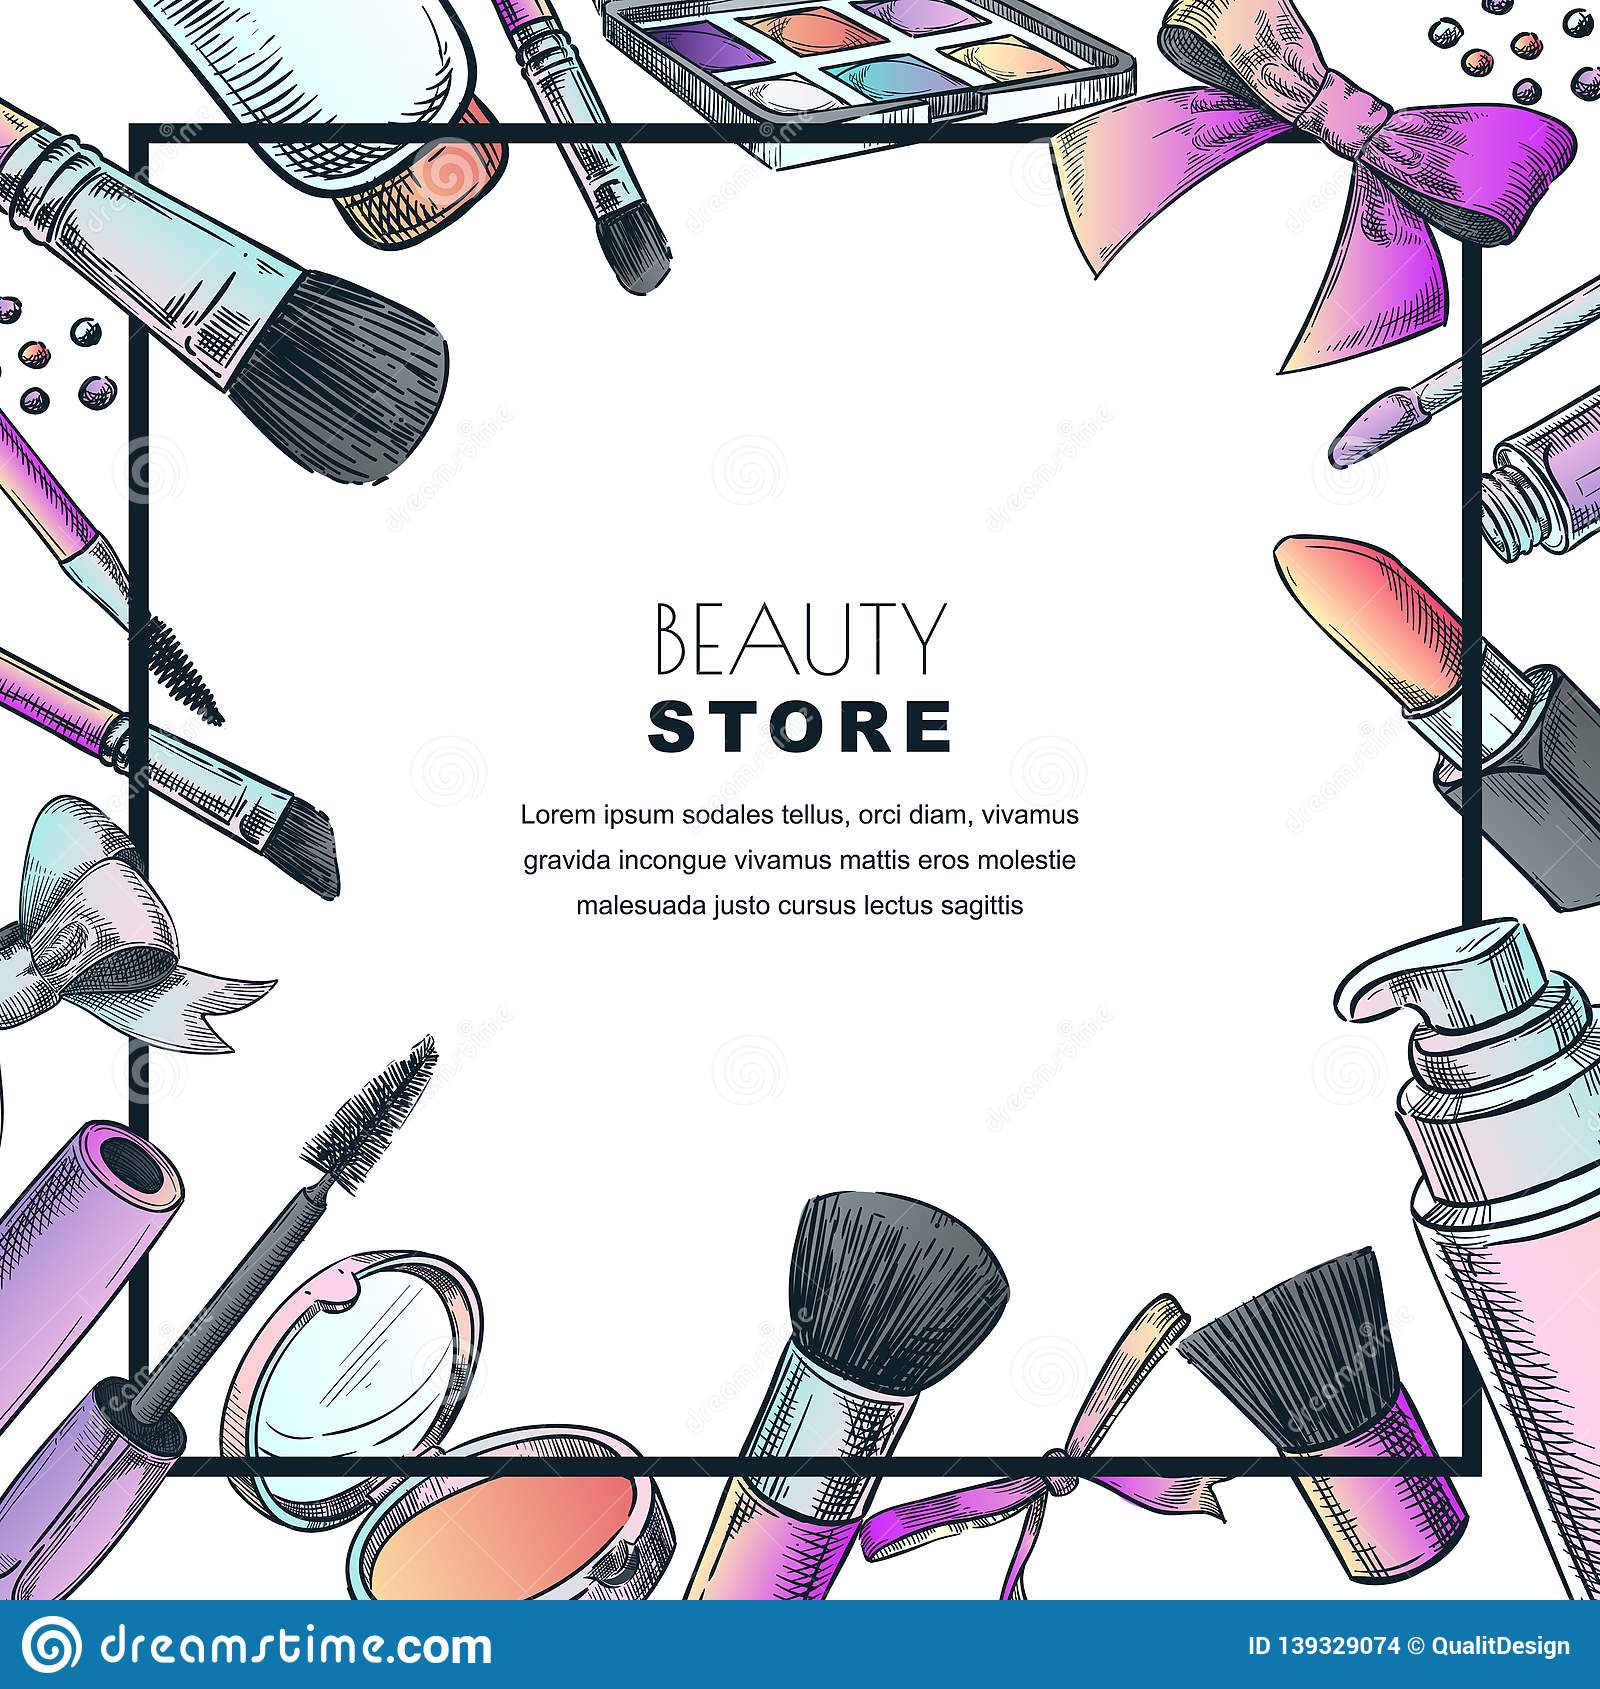 Makeup Banner Poster Or Label Design Template Sketch Illustration Of Facial Cosmetic Beauty Shop Background Stock Vector Illustration Of Lipgloss Blush 139329074